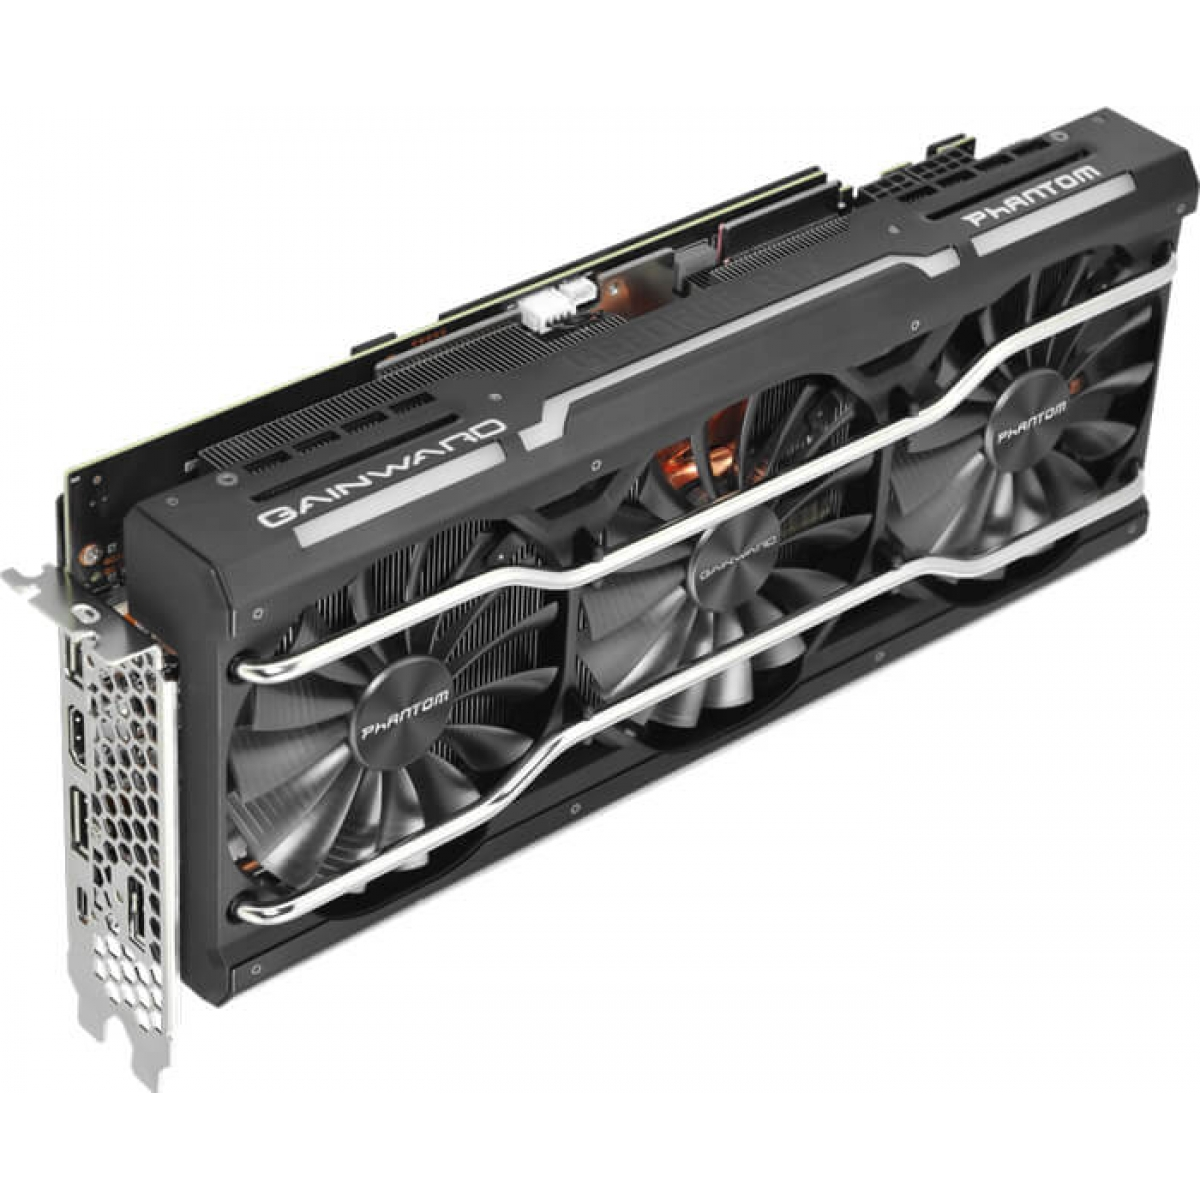 Placa De Vídeo Gainward Geforce RTX 2070 Phantom GLH (GOES LIKE HELL), 8GB GDDR6, 256Bit